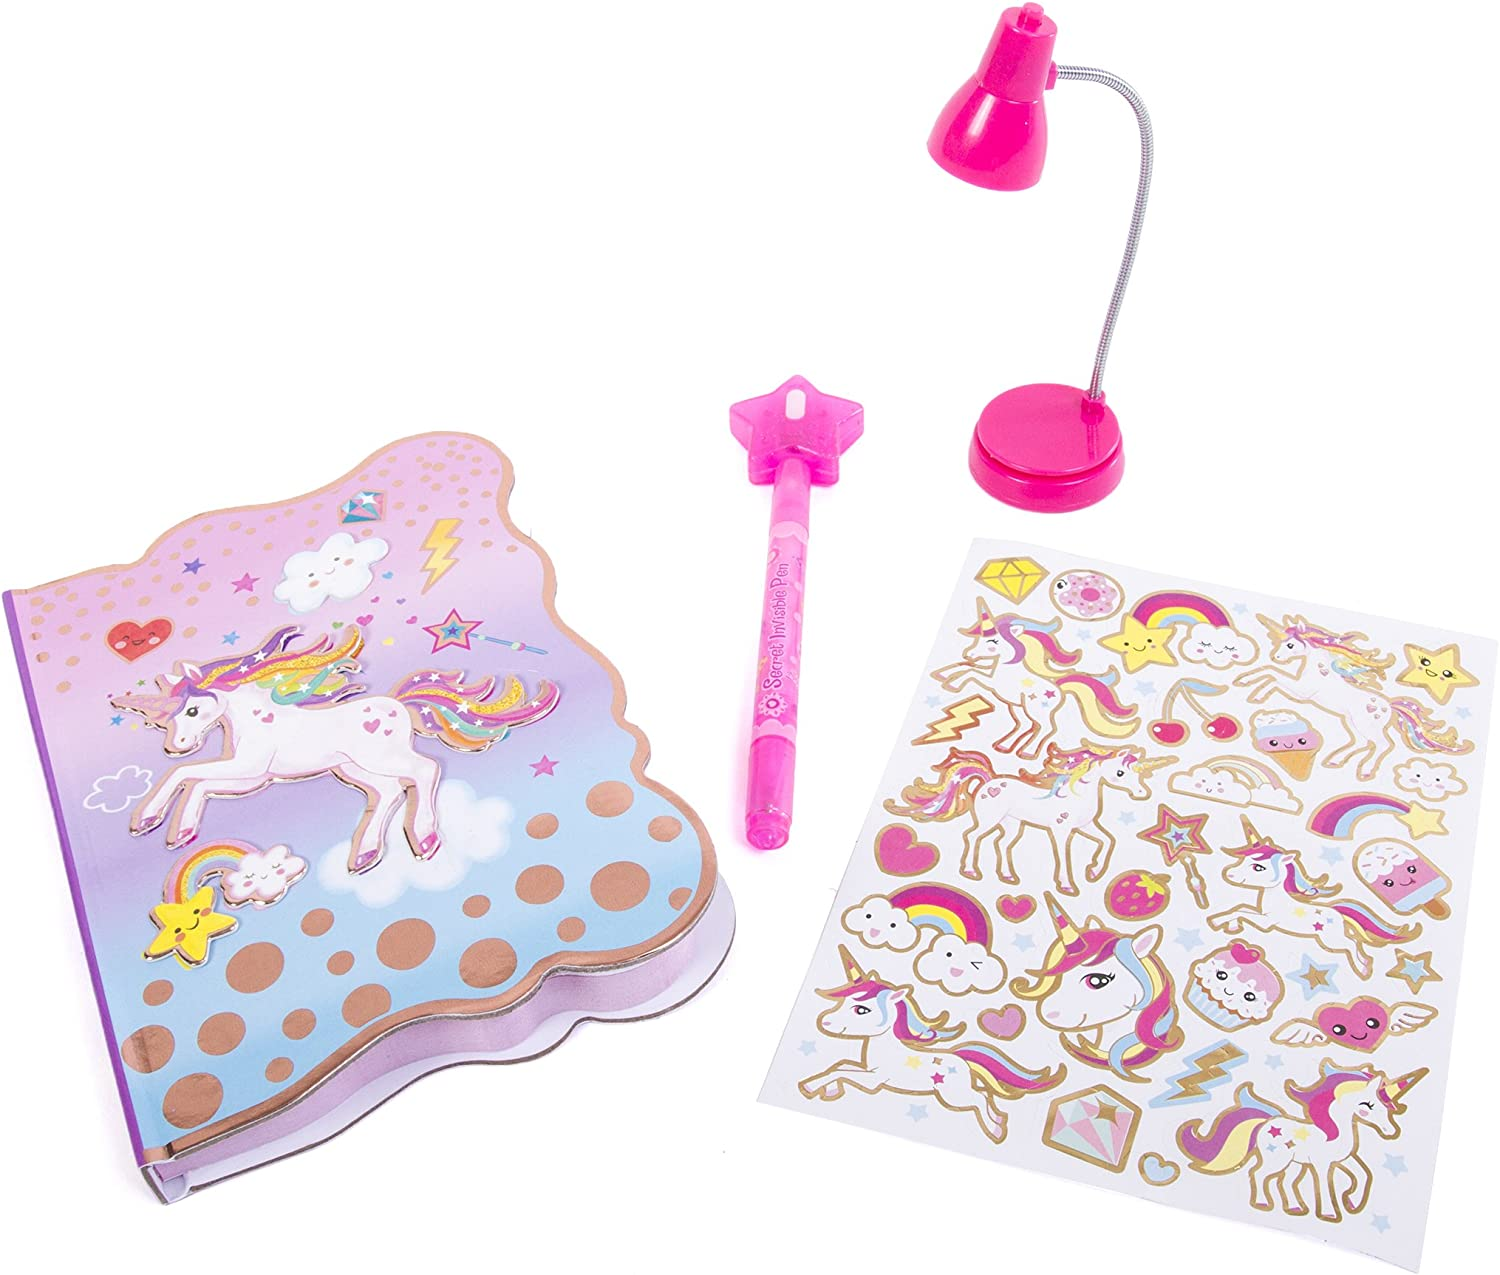 """Hot Focus Unicorn Secret Diary with LED Book Light Invisible Ink Pen and Sticker Set 6/"""" Journal Notebook with 100 Double Sided Lined Pages for Kids"""